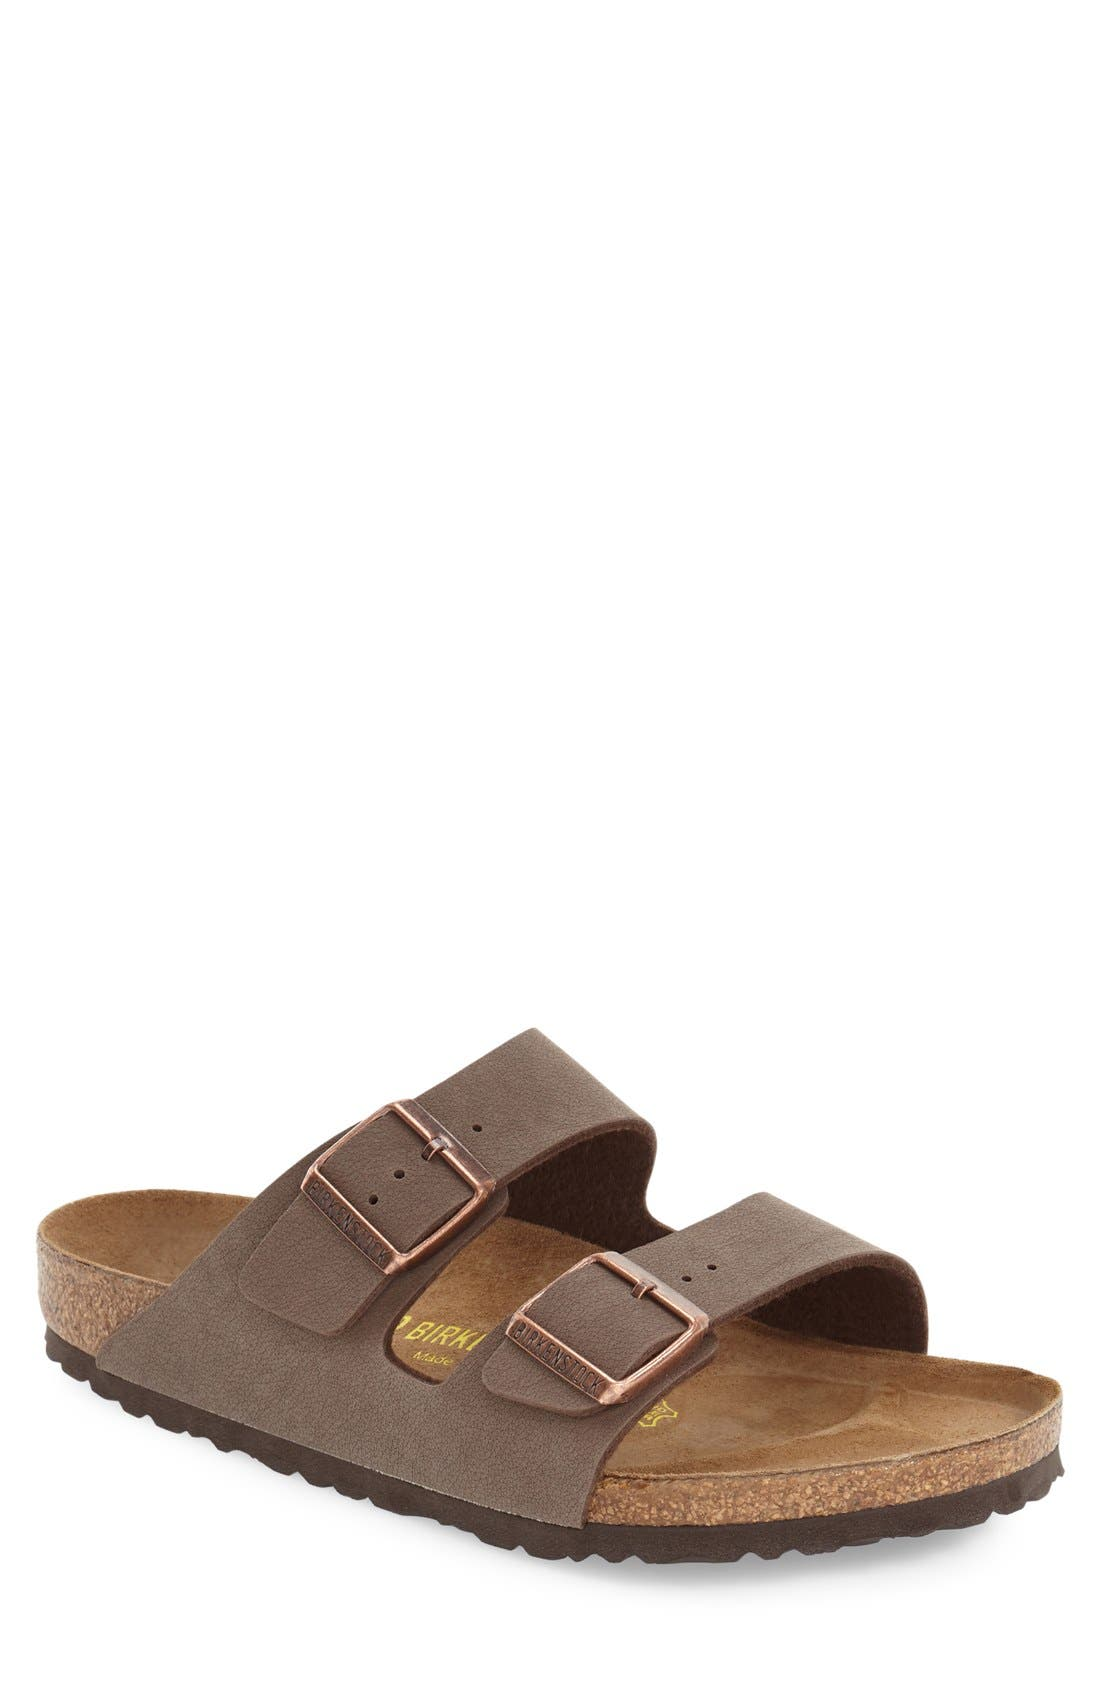 'Arizona' Slide Sandal, Main, color, MOCHA